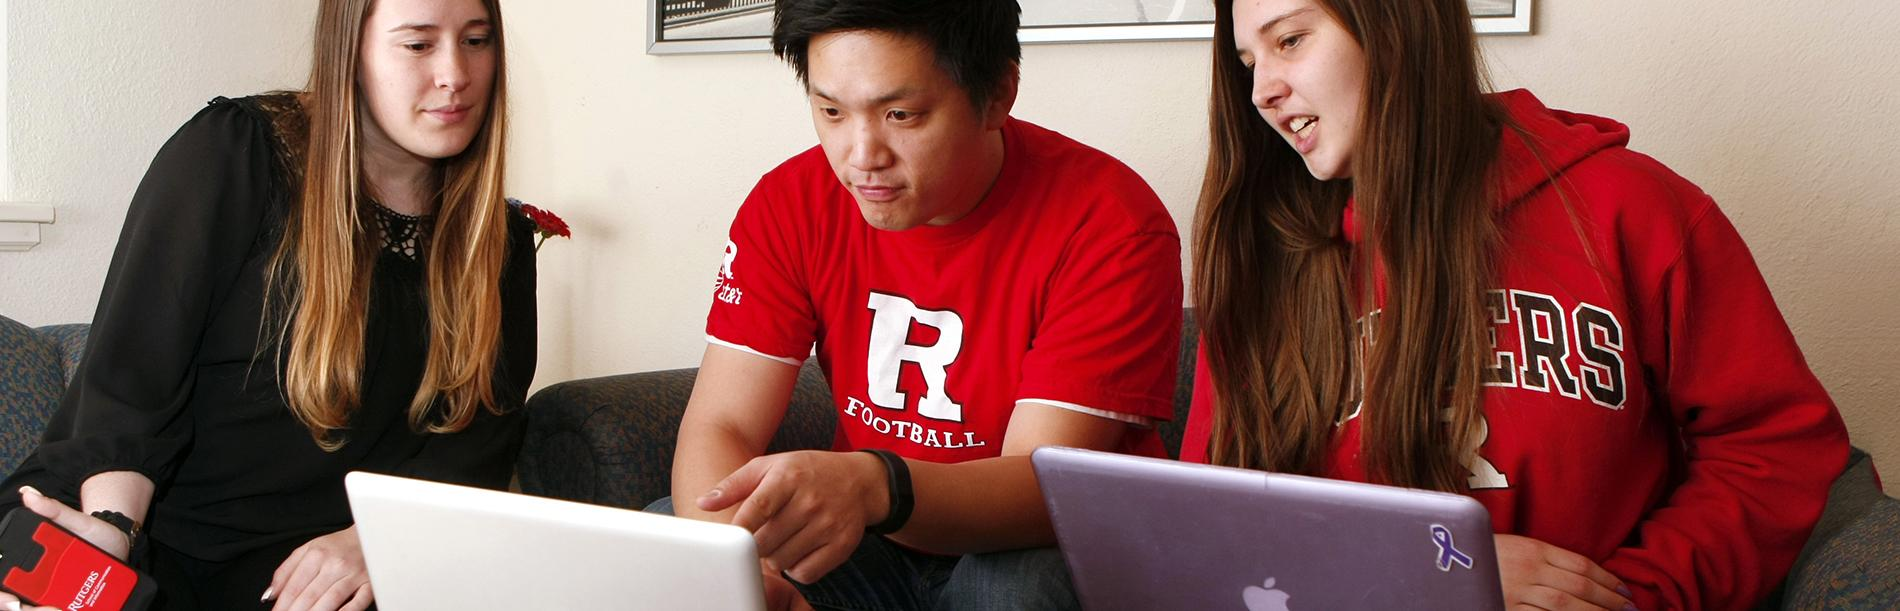 Three students learning wearing Rutgers shirts